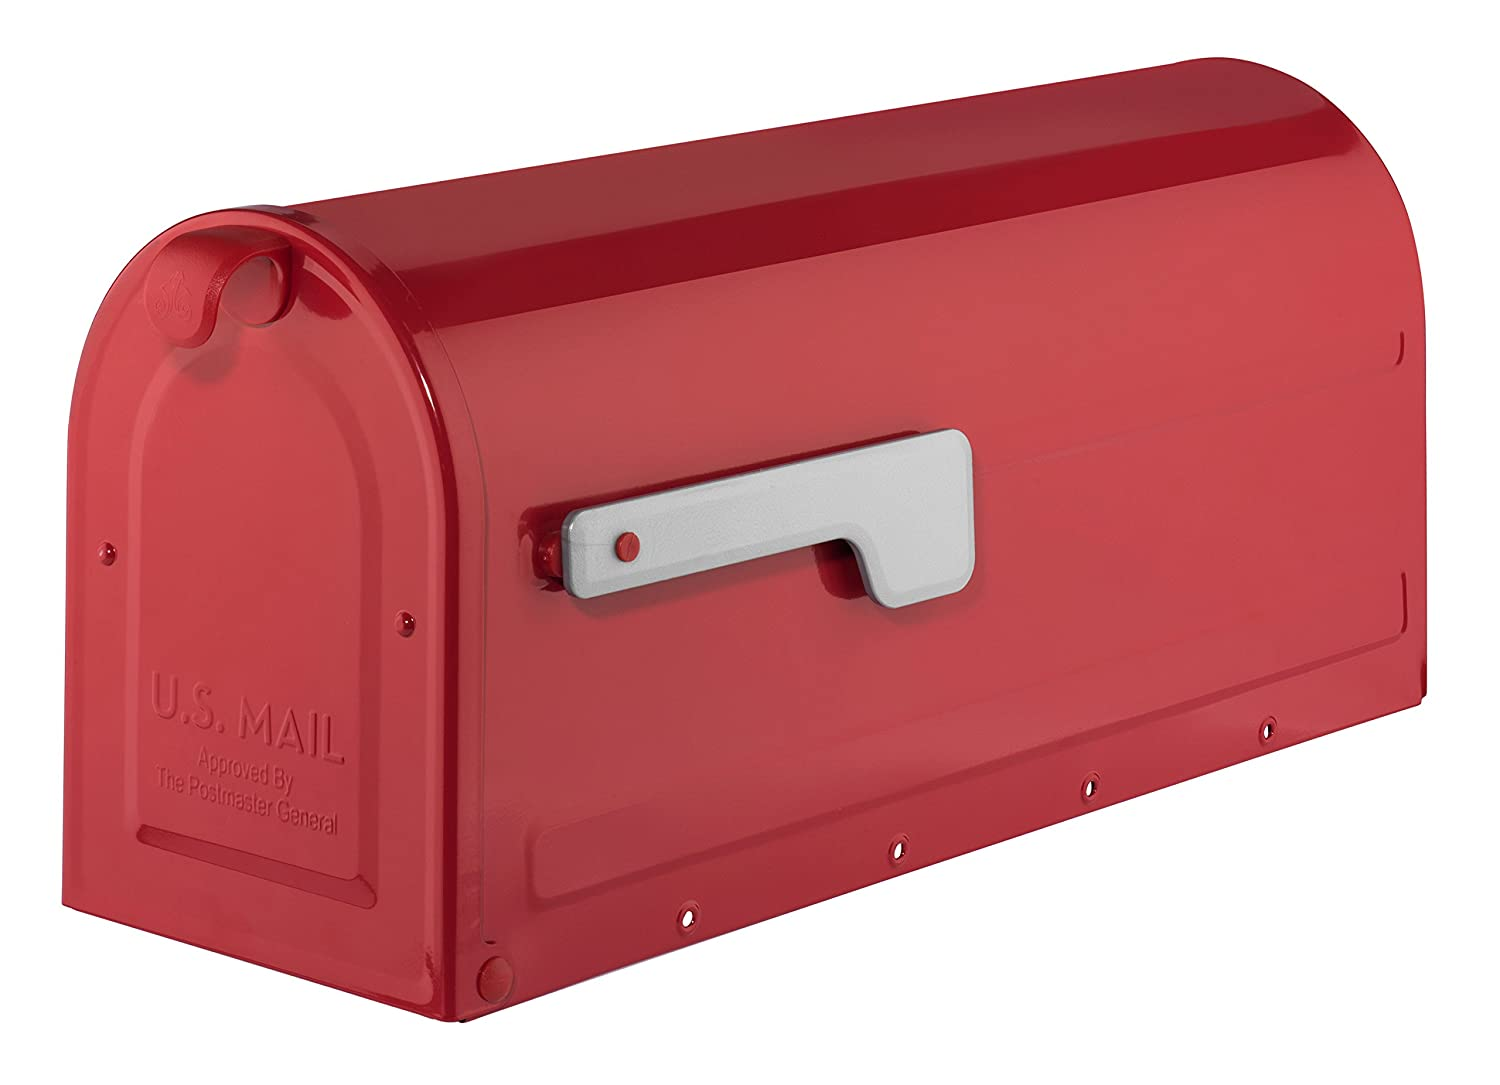 ARCHITECTURAL MAILBOXES 7600R Red with Silver Flag MB1 Post Mount Mailbox Medium